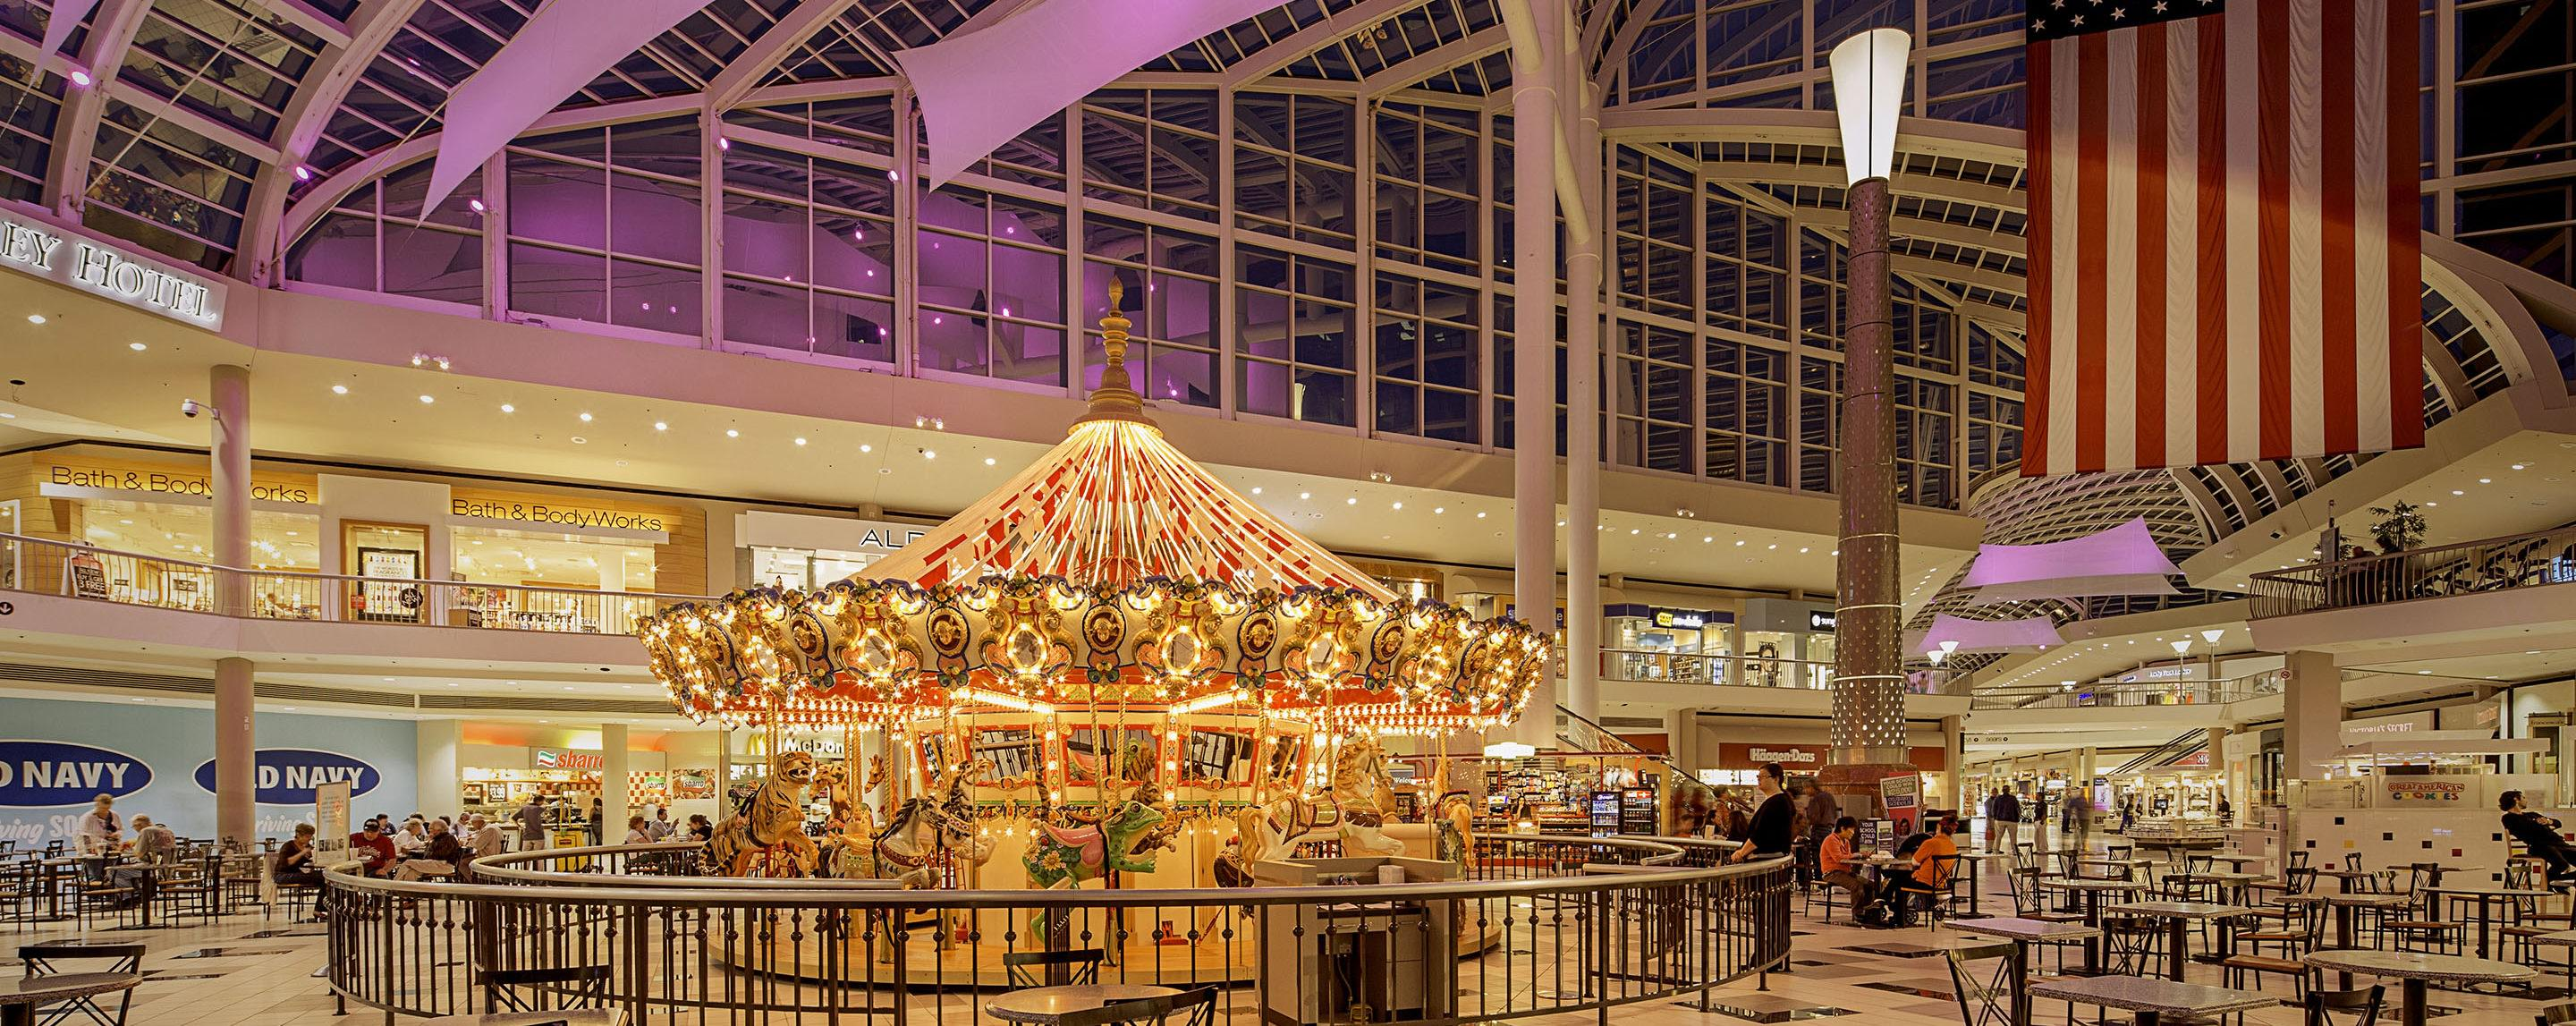 A shot of tables and a well lit carousel in the middle of a glass-roofed mall at night.